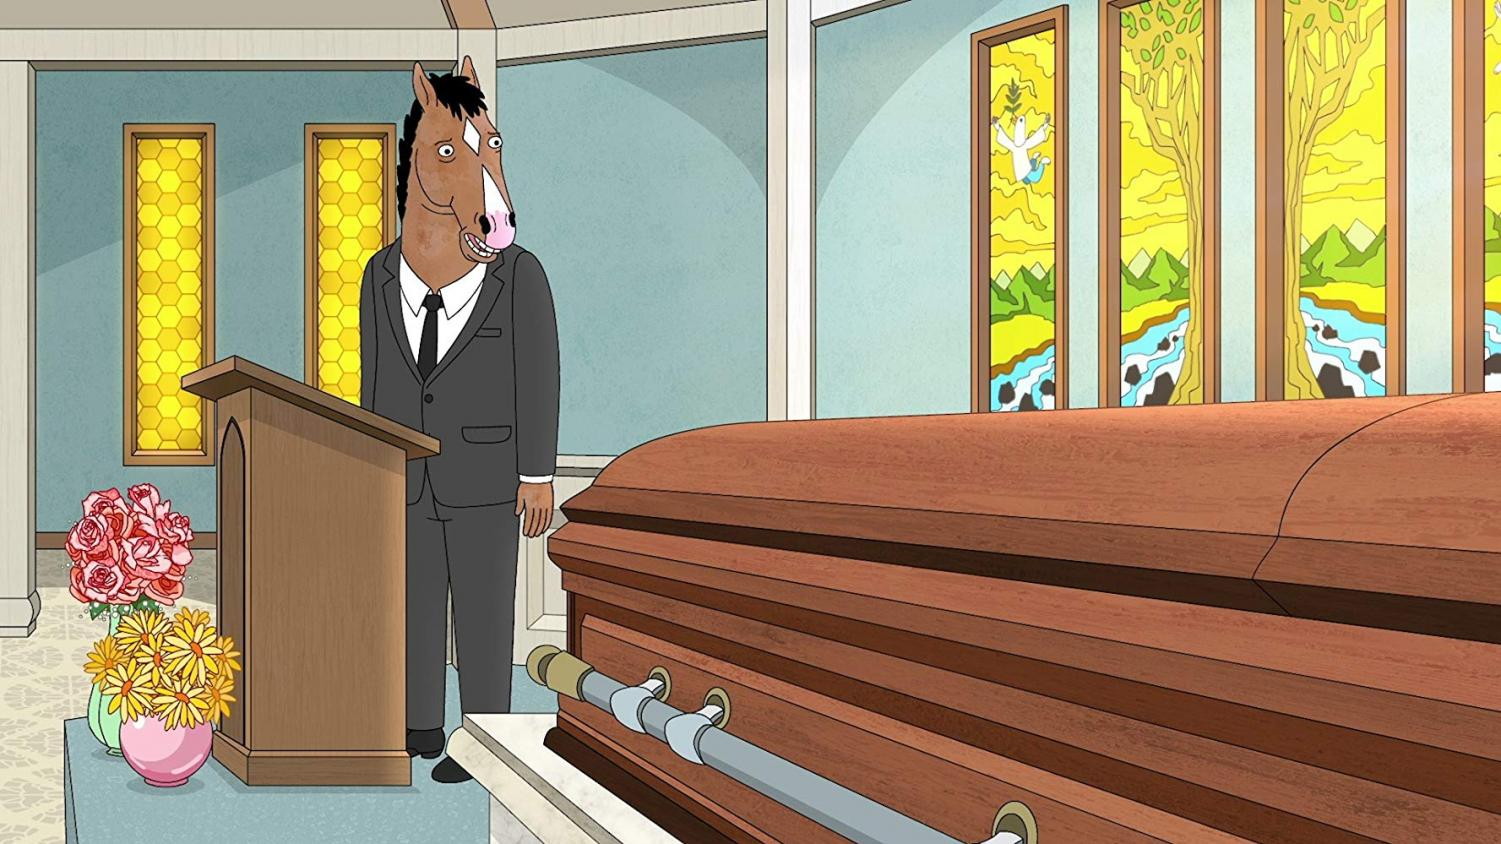 Bojack gives a eulogy at another character's funeral. Image courtesy of Netflix.